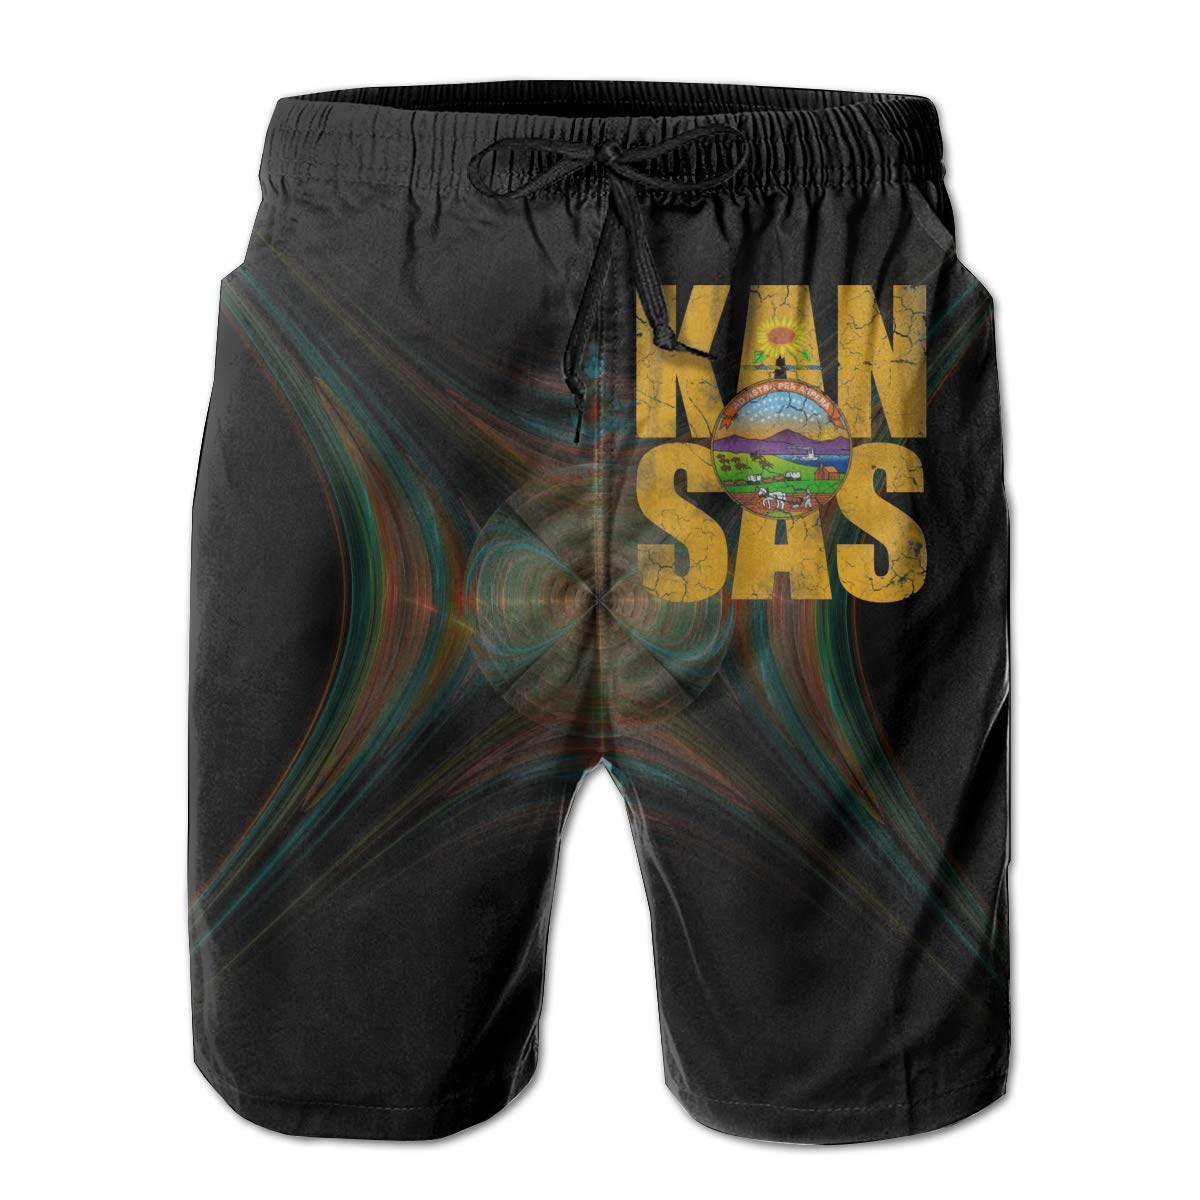 Kansas Flag 3D Print Mens Beach Shorts Swim Trunks Workout Shorts Summer Shorts